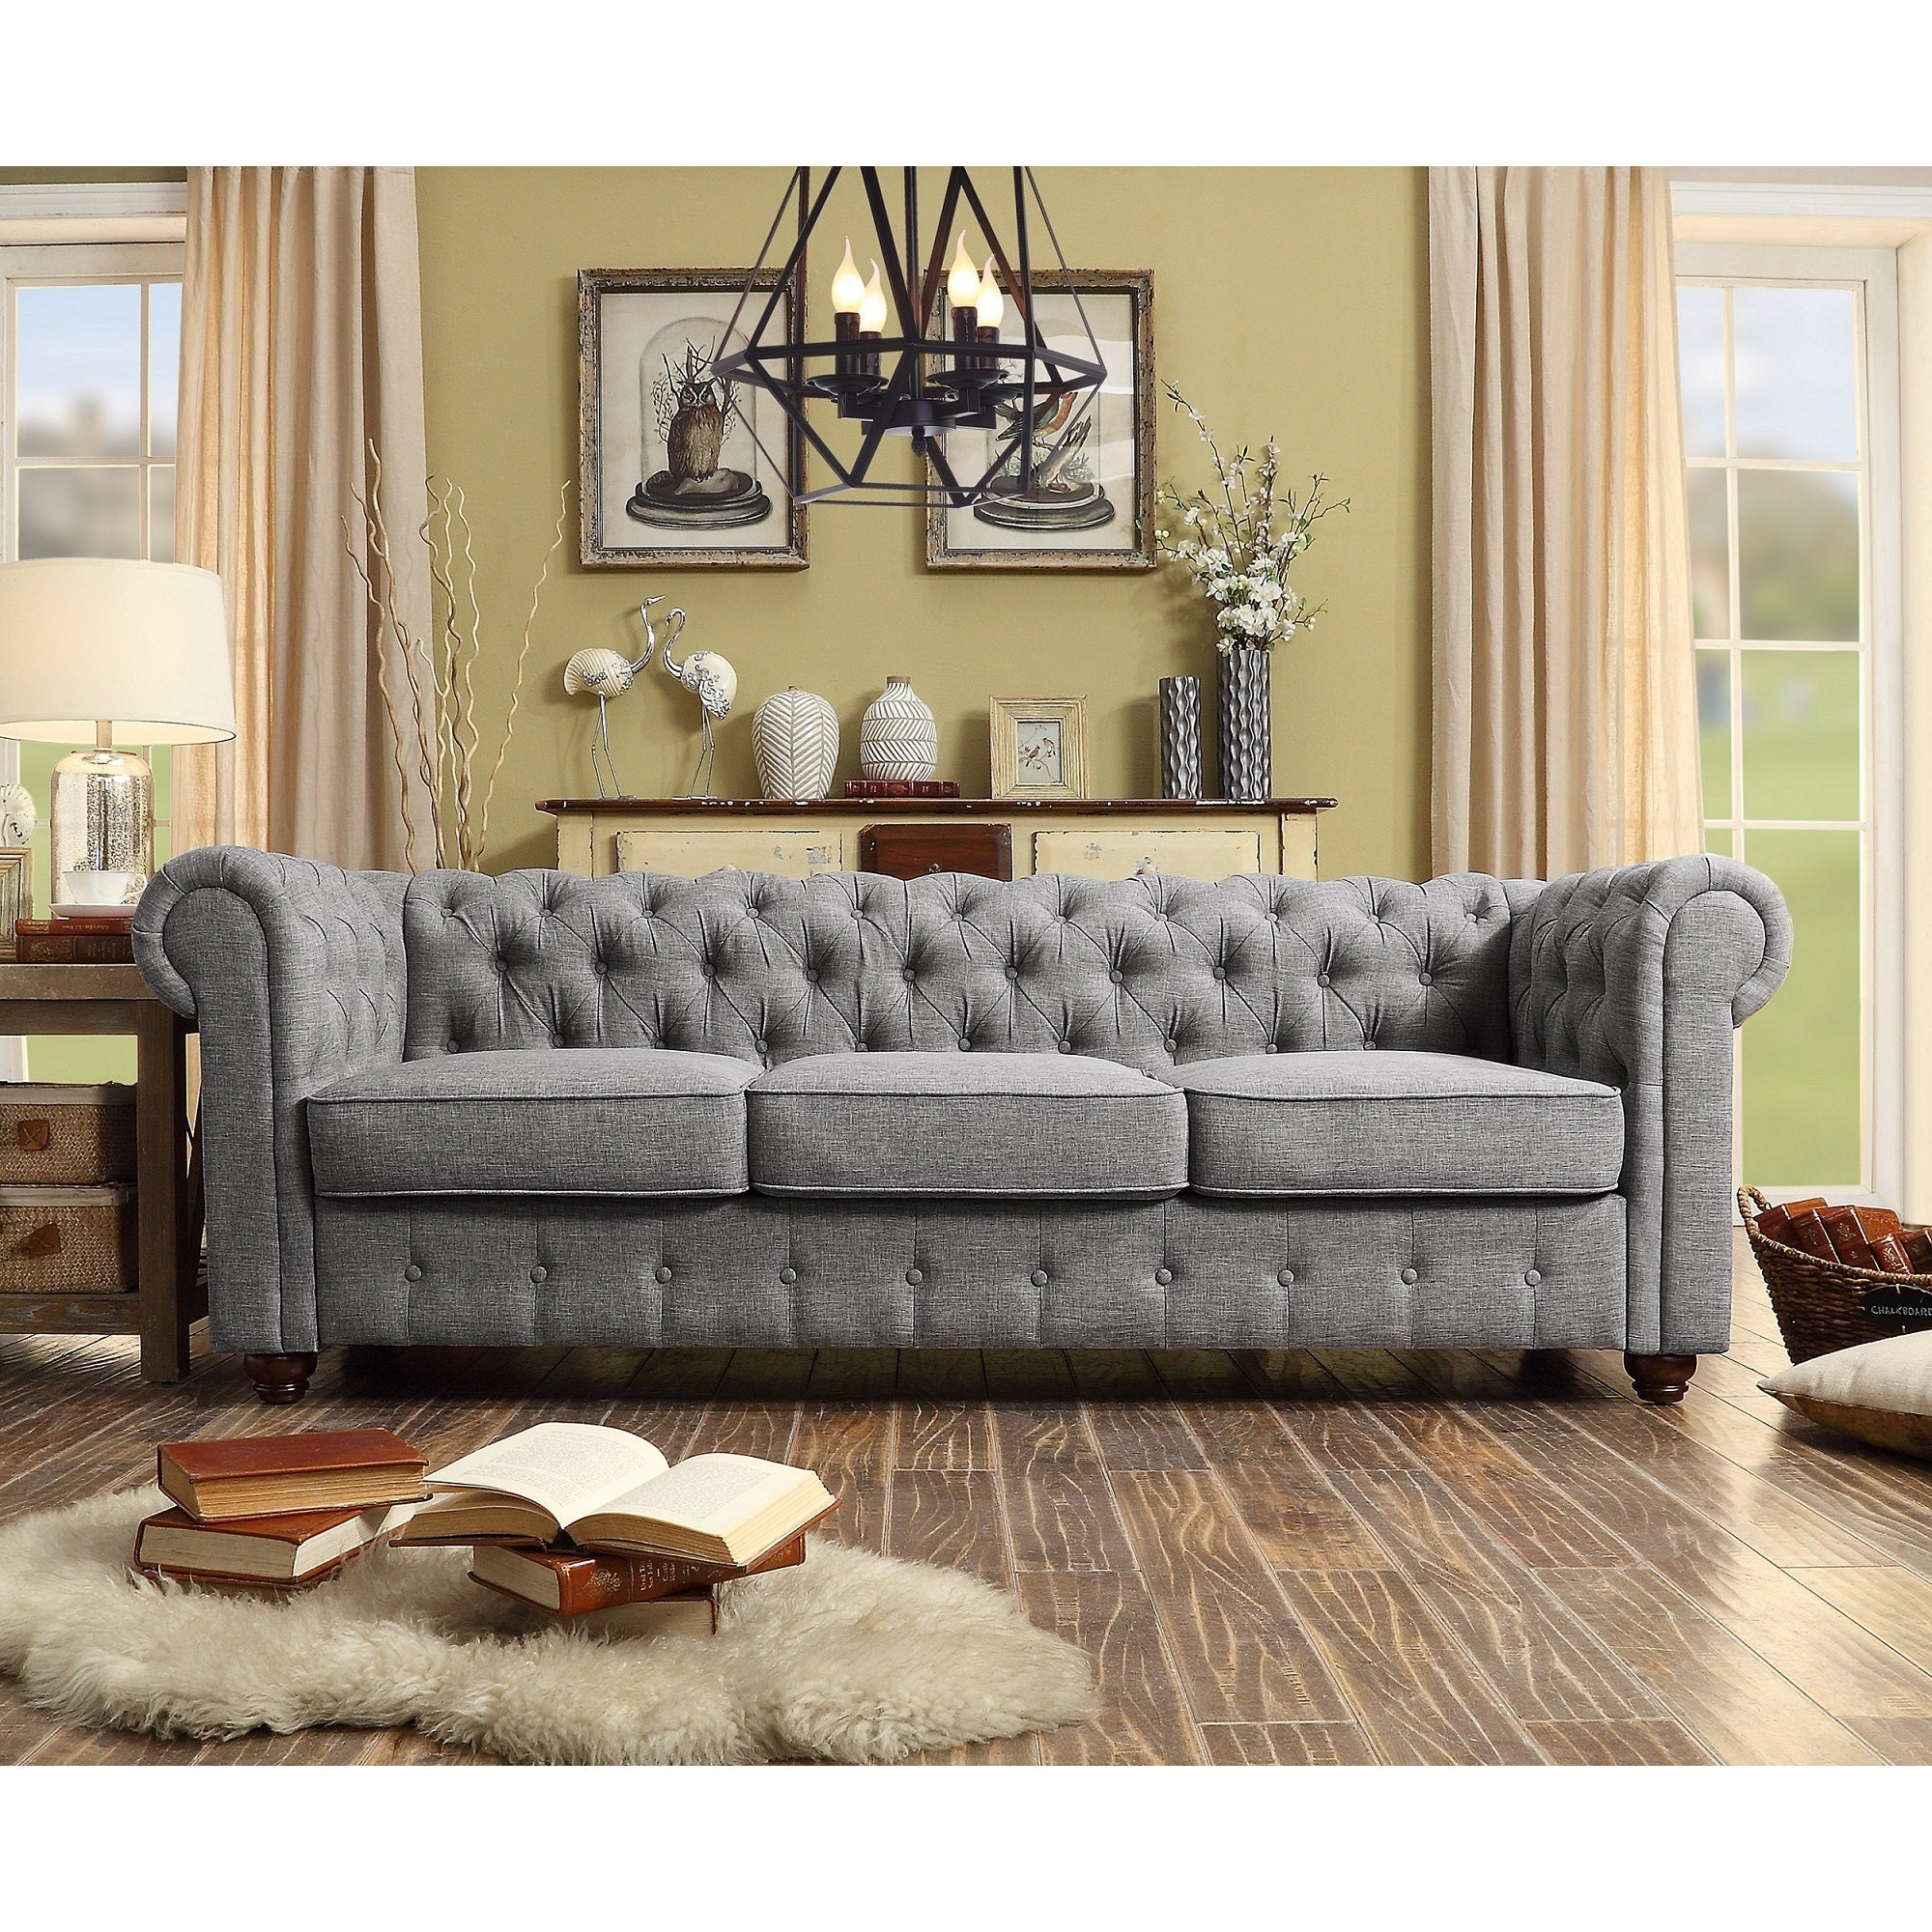 Garcia Hand Tufted Rolled Arms Sofa   Free Shipping Today   Overstock    18905652